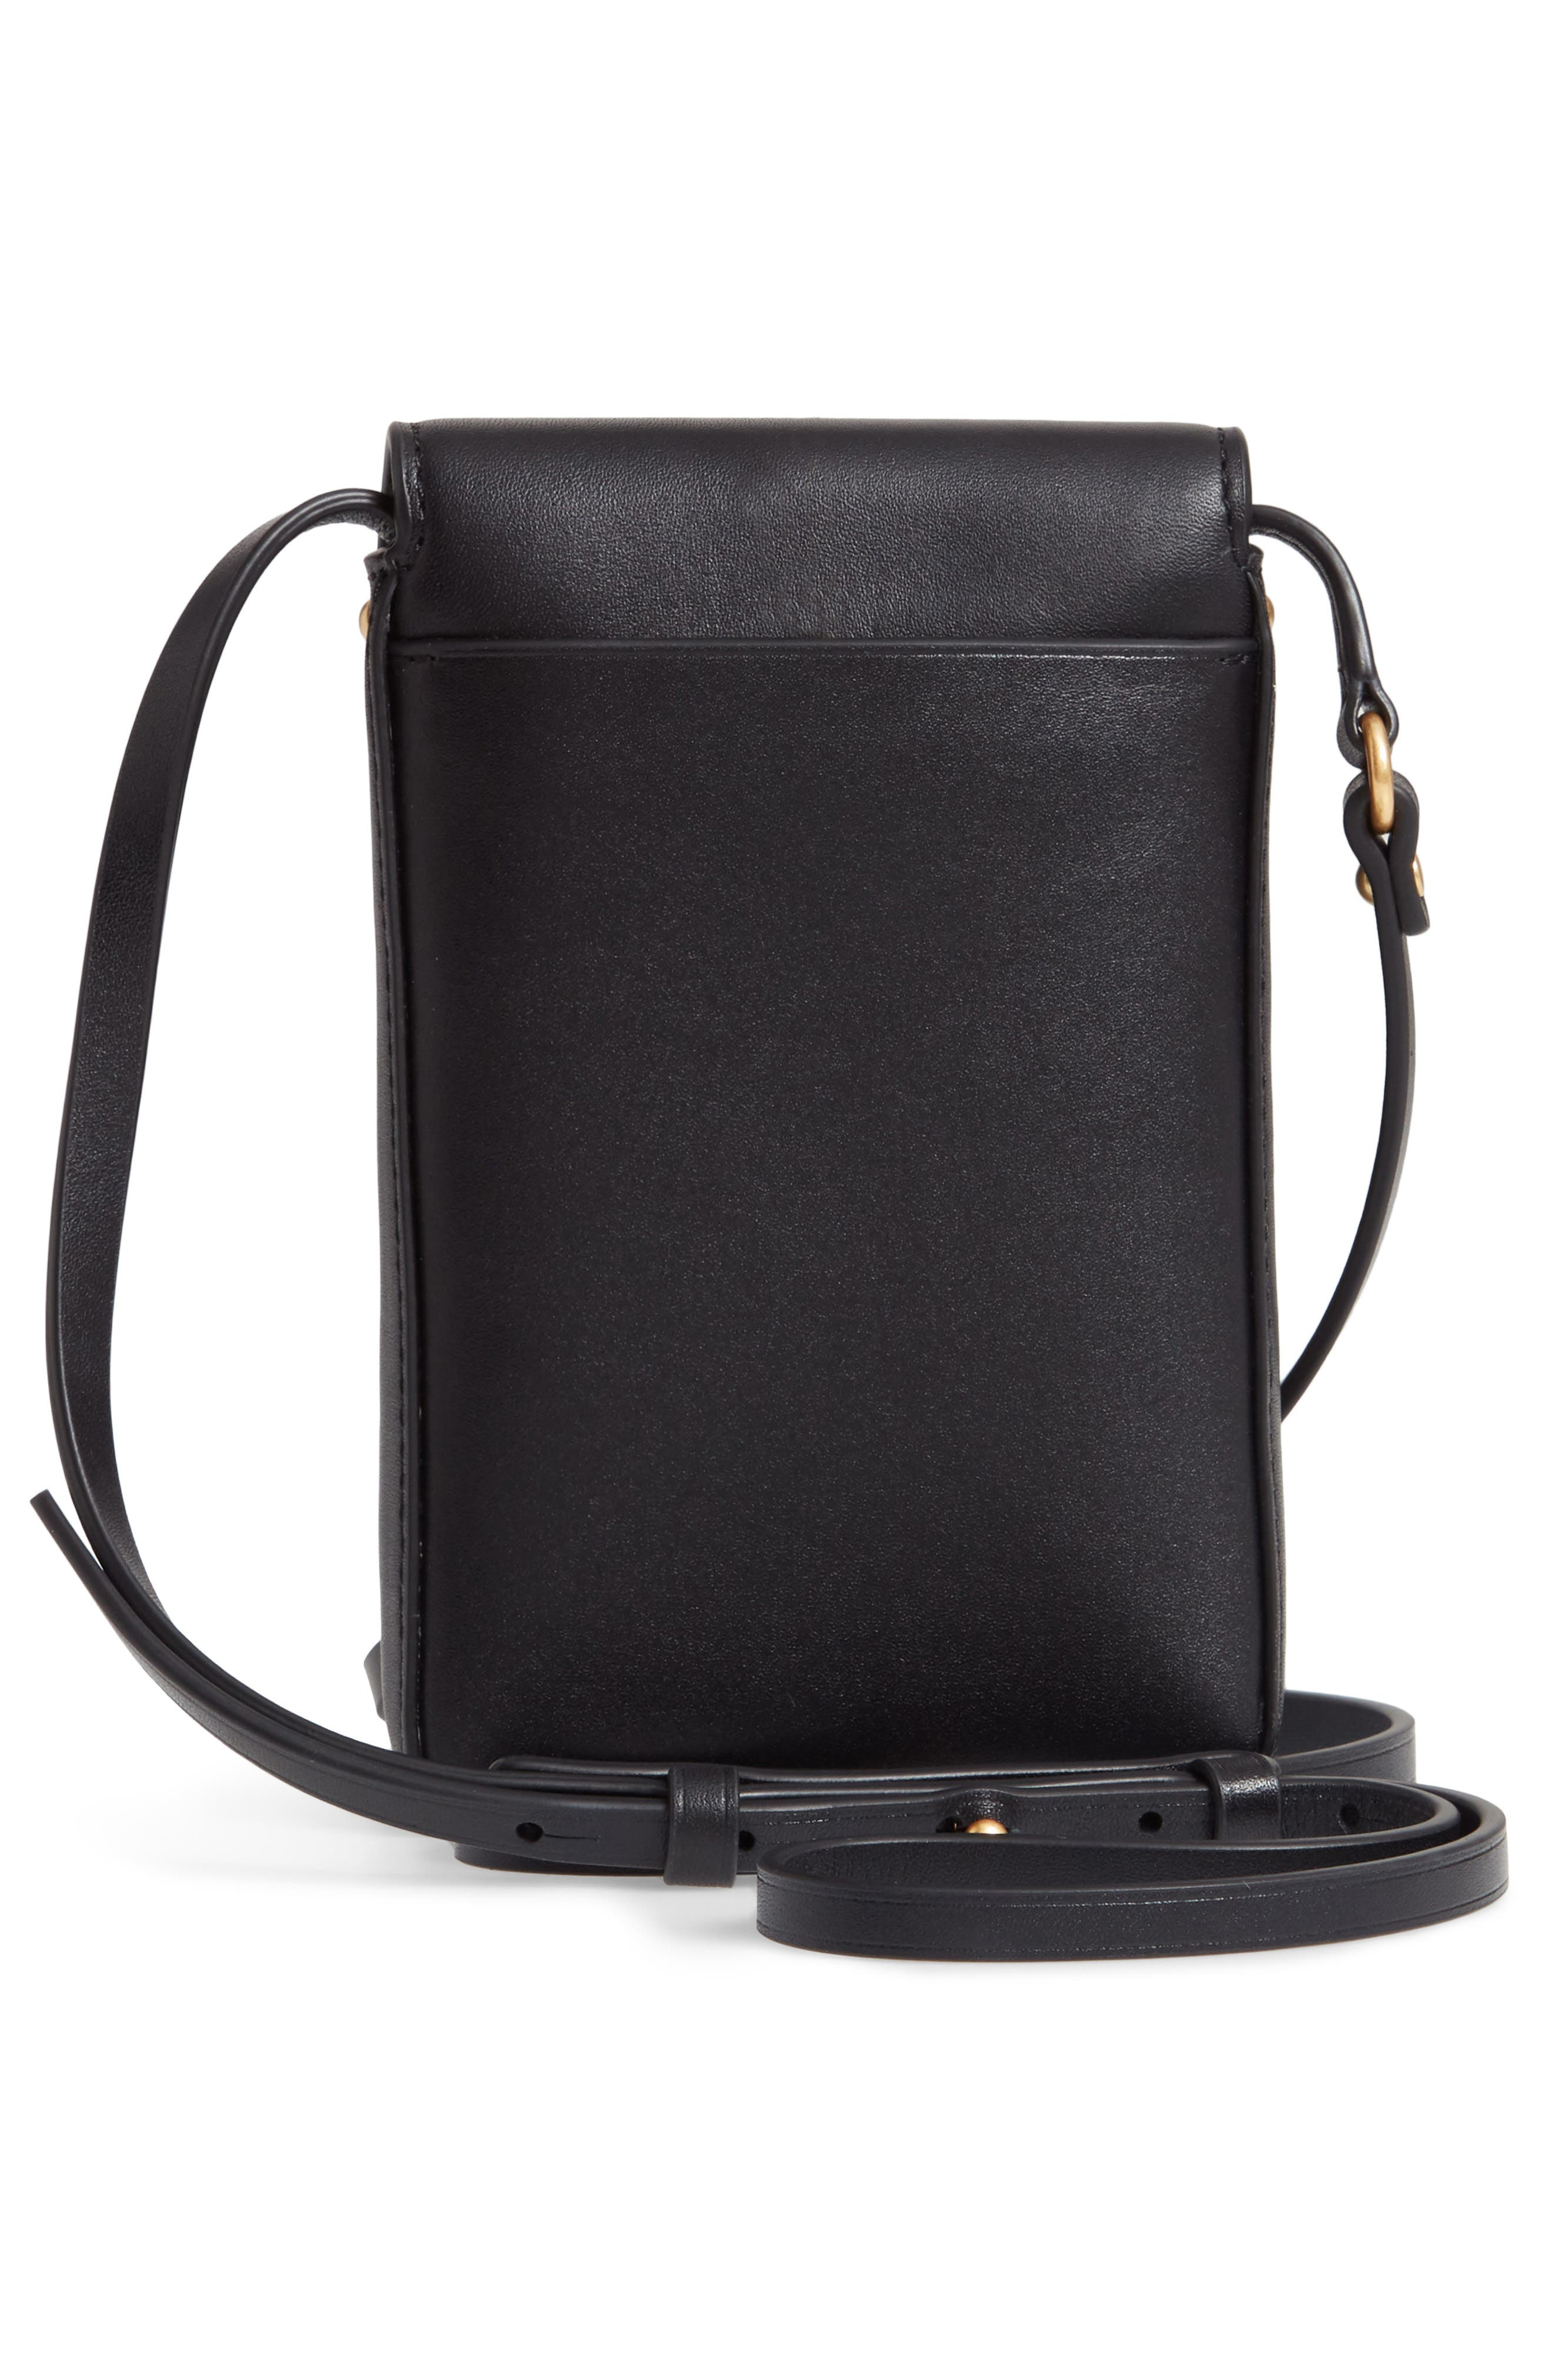 TORY BURCH, Miller Leather Phone Crossbody Bag, Alternate thumbnail 3, color, BLACK